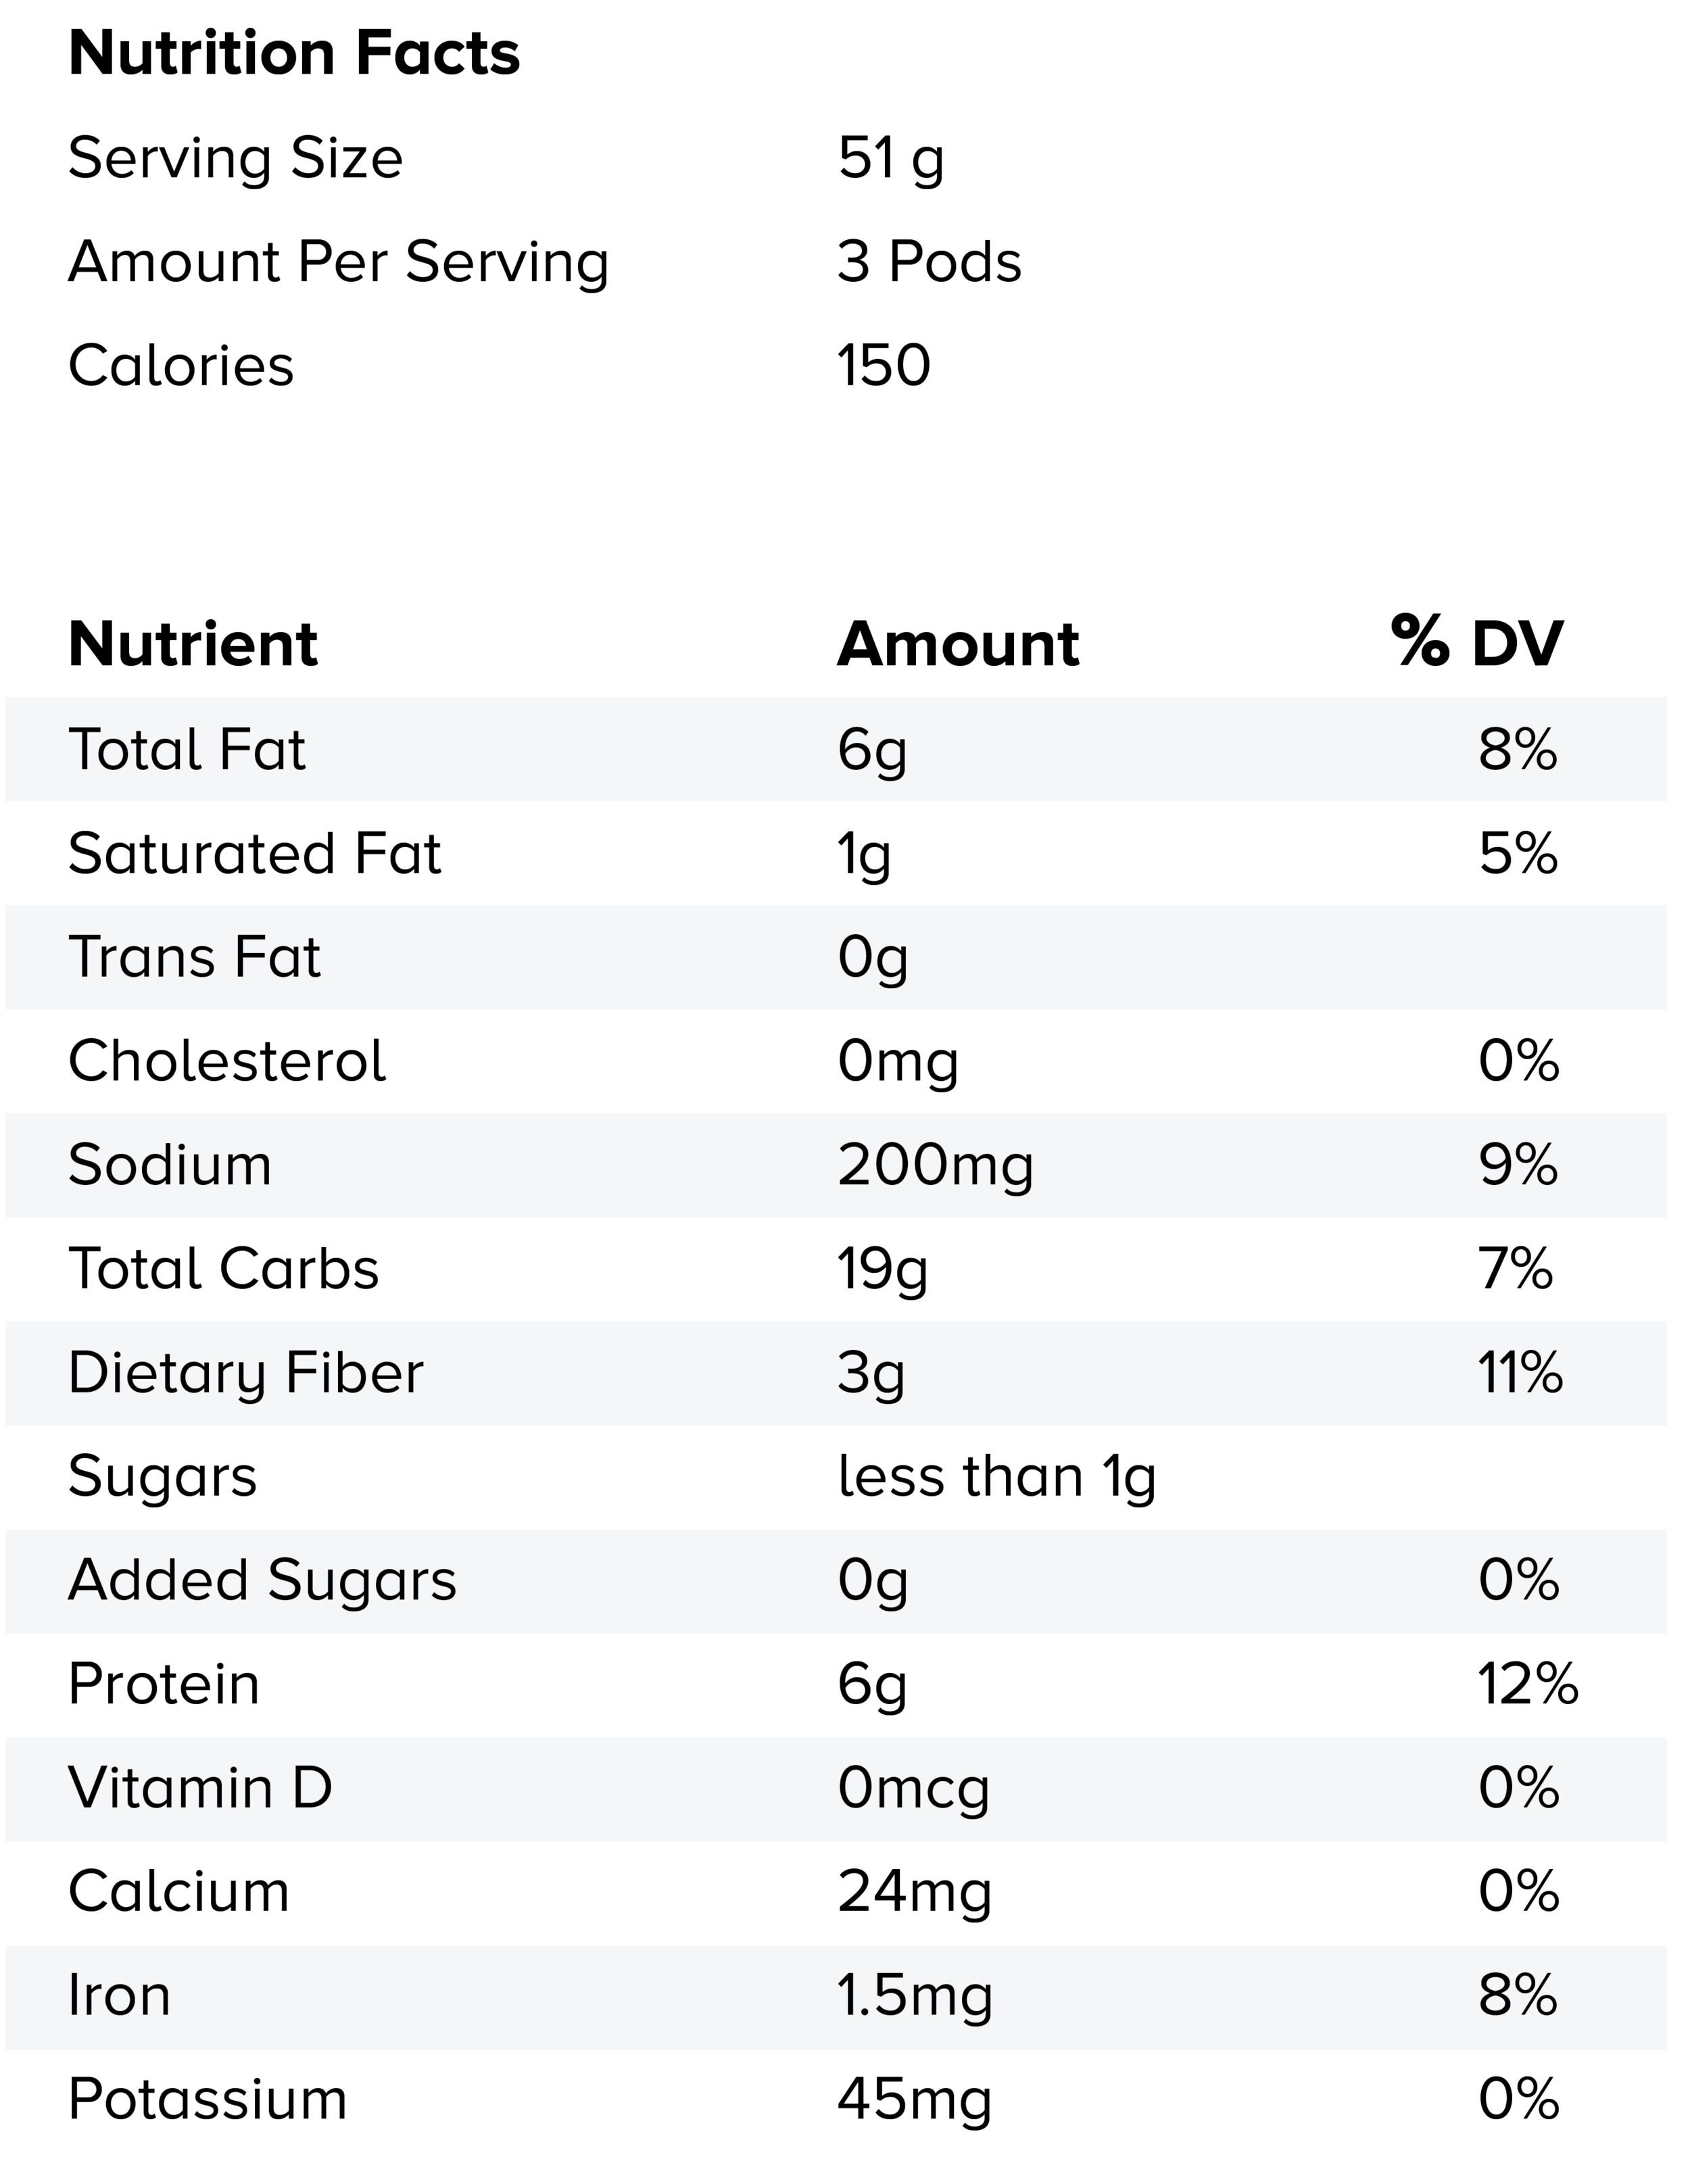 pod nutrition facts web 9-11-17-01.png